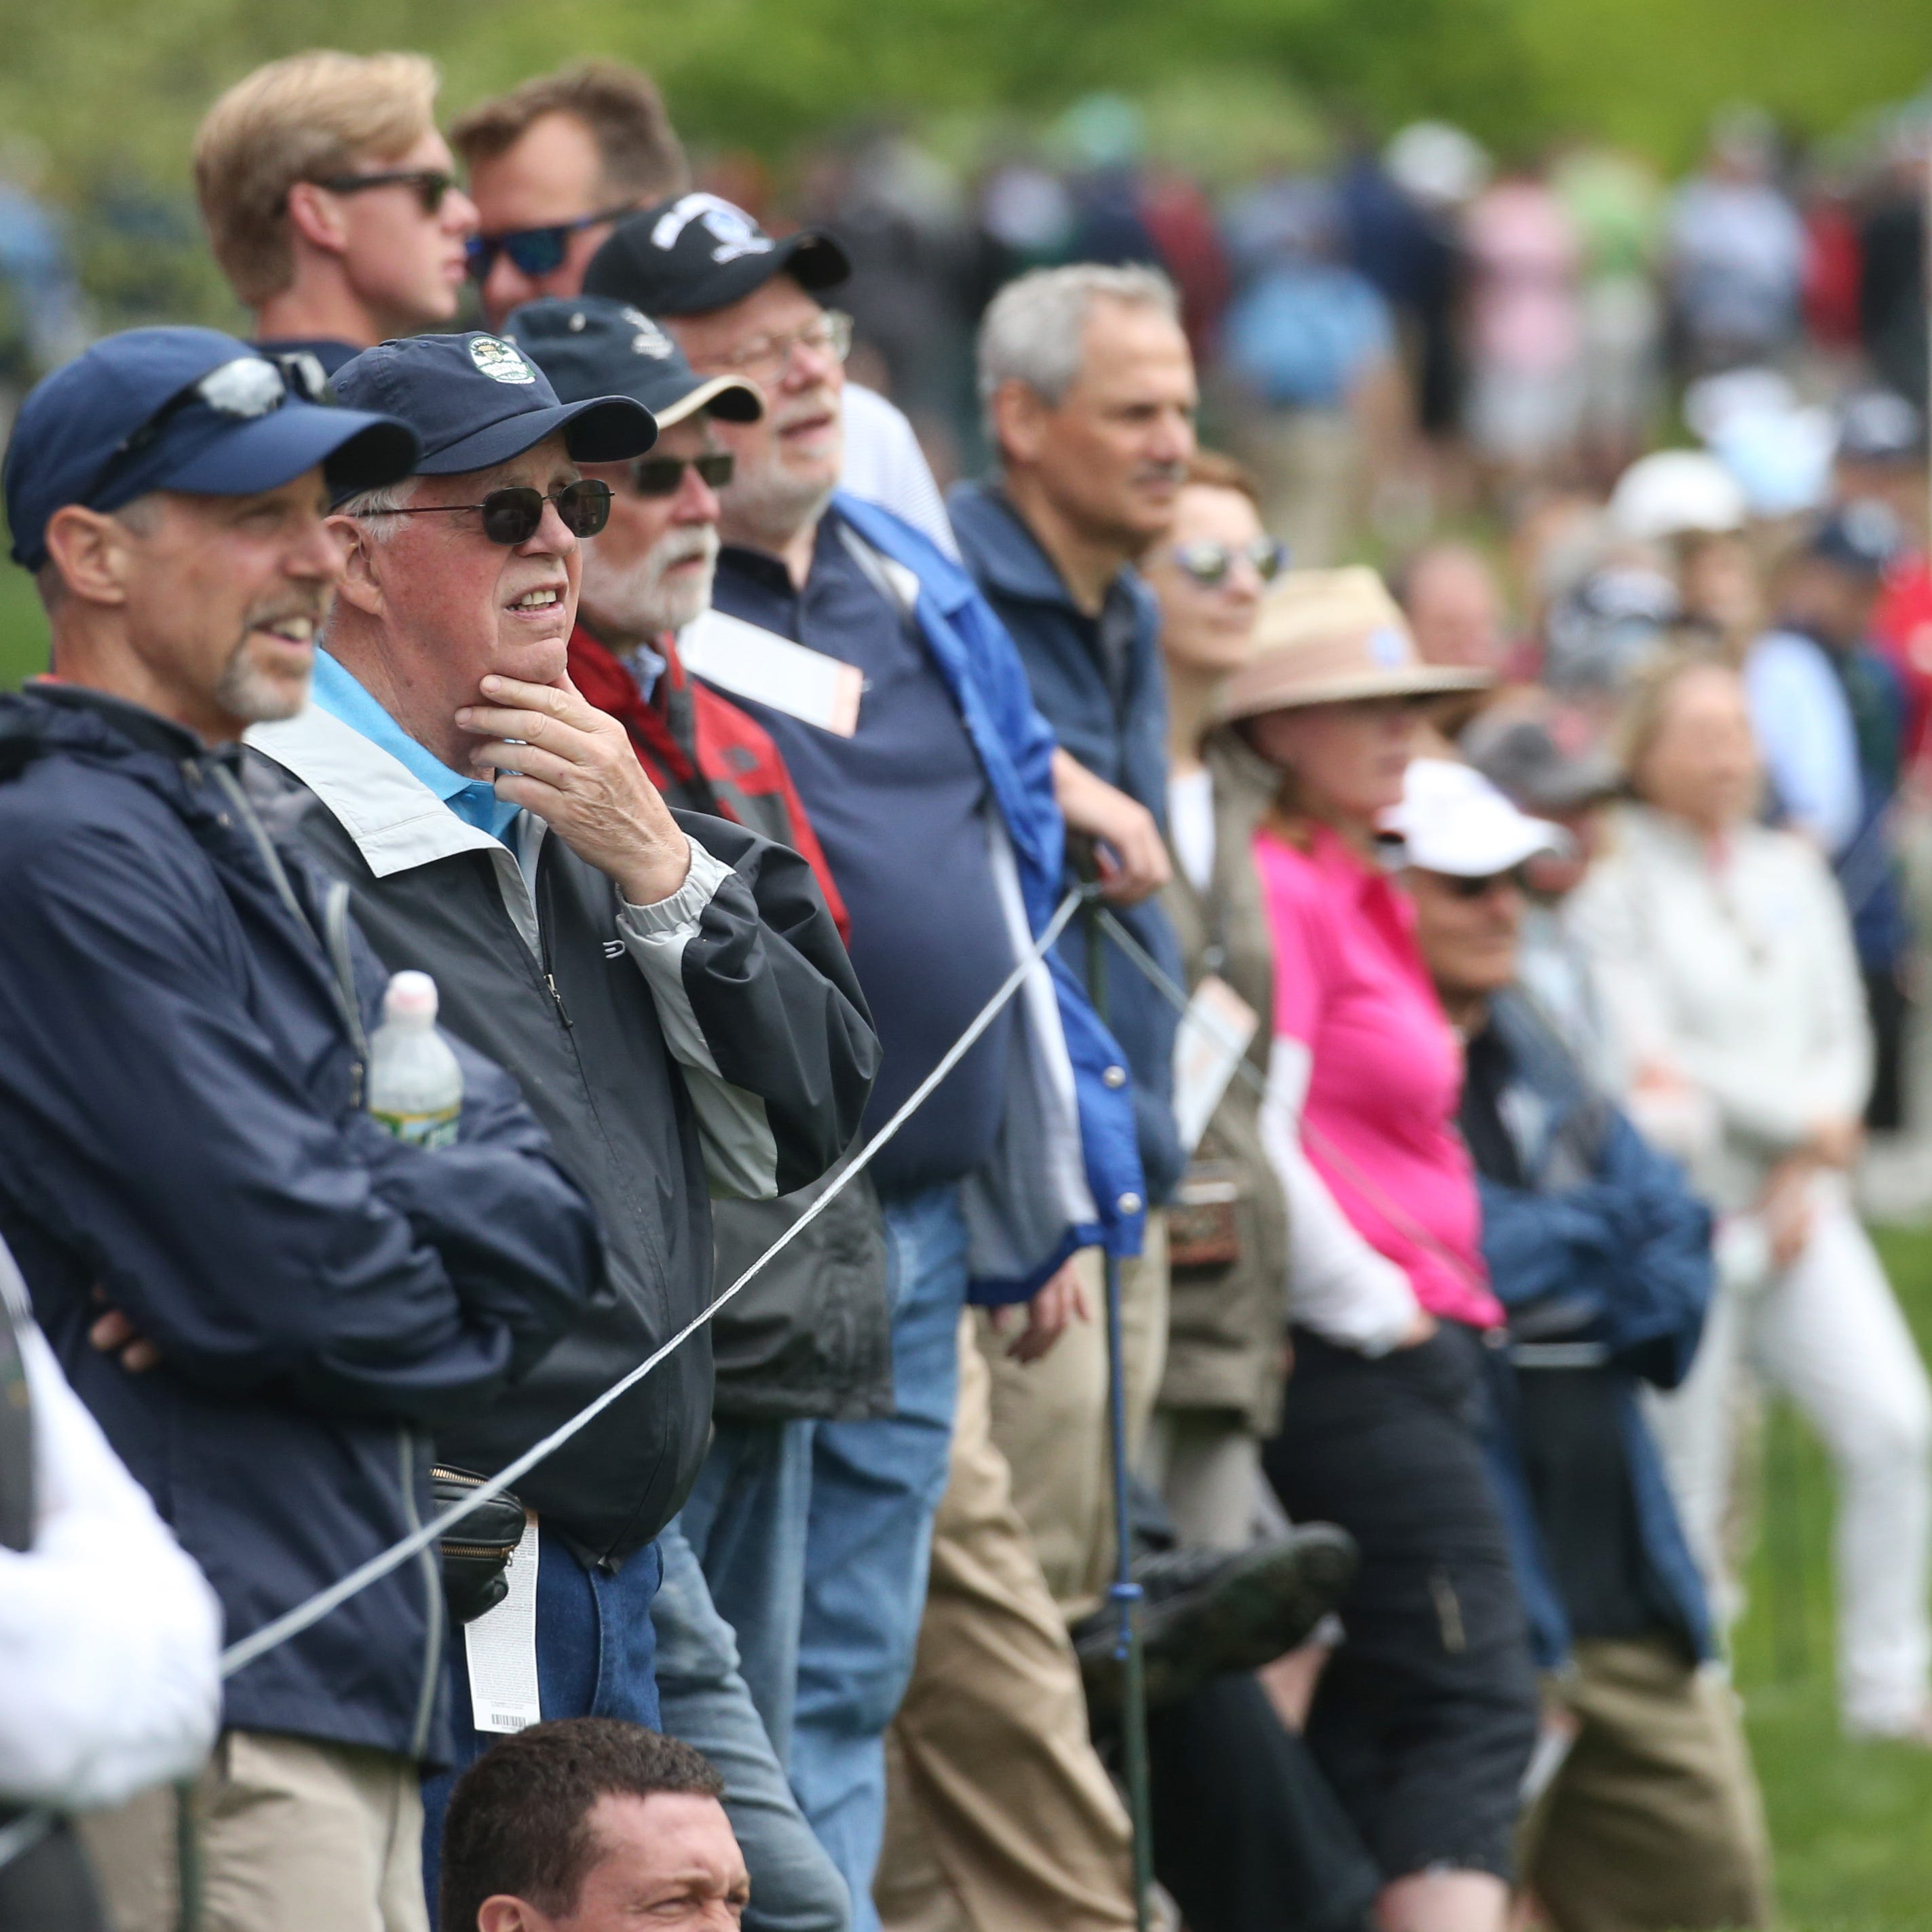 Senior PGA Championship Day 3: Rise and shine, it's time for golf as tee times moved up